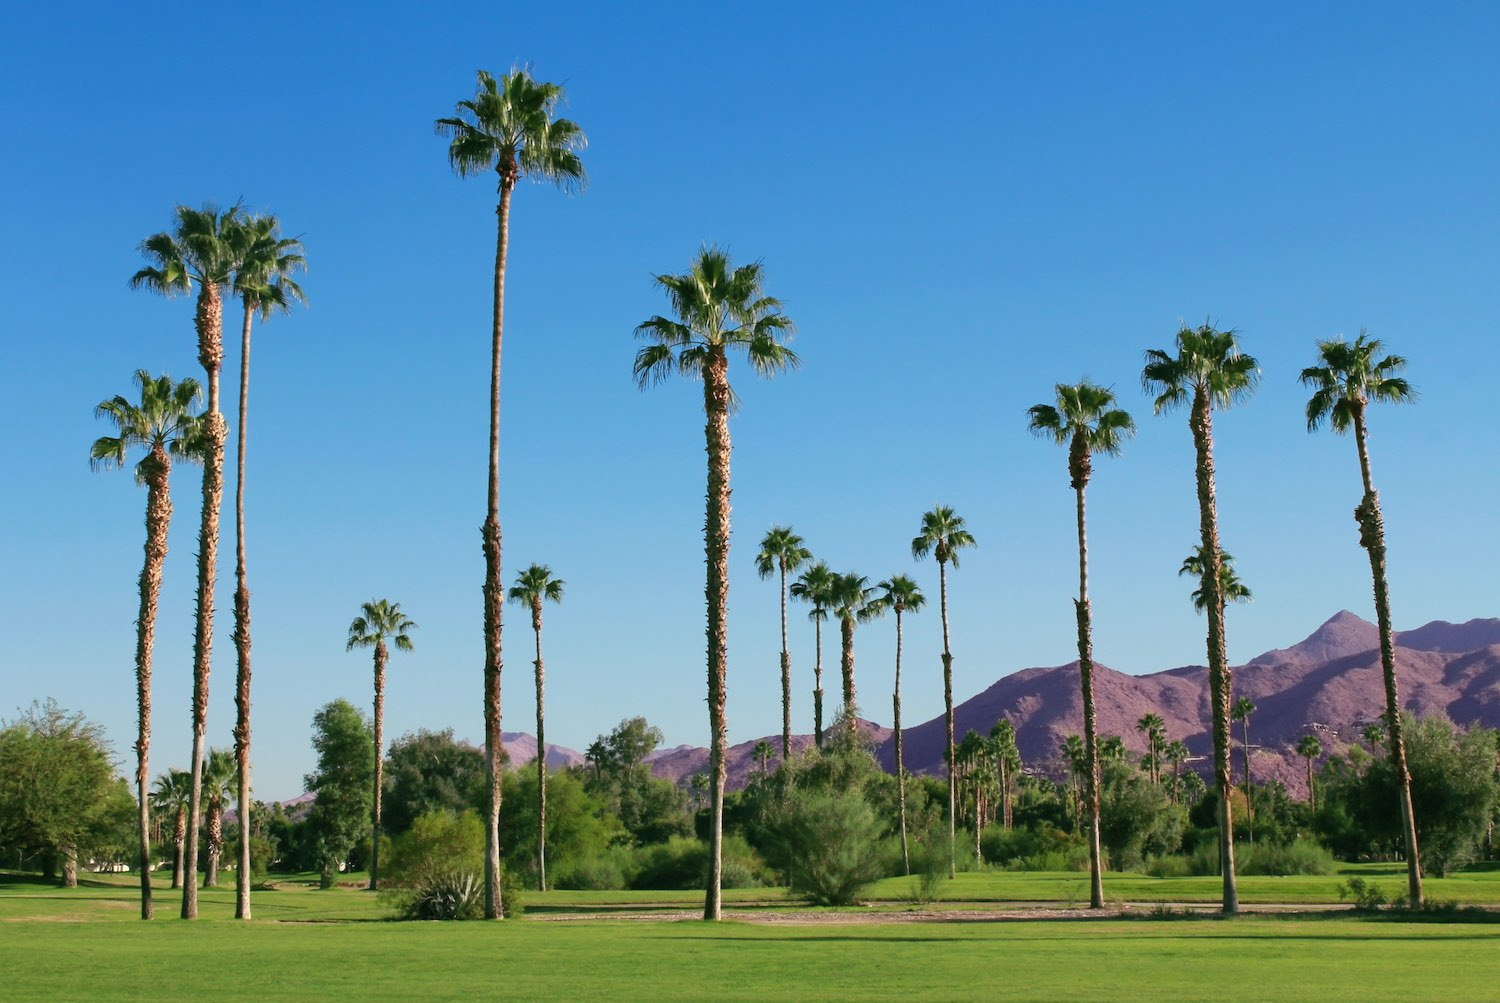 Palm Springs, California - Hot Places to Visit in February